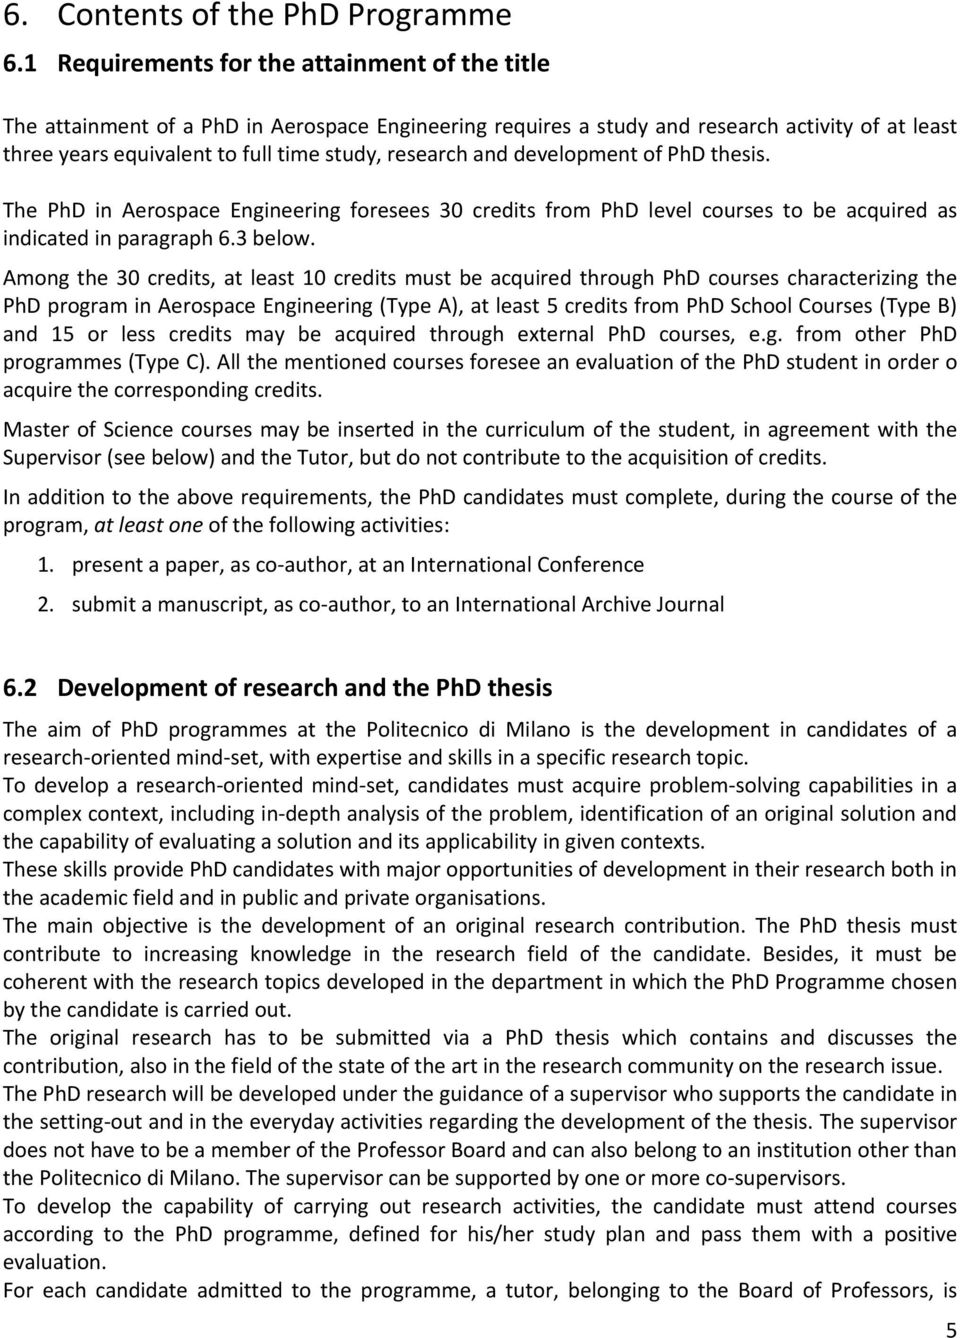 and development of PhD thesis. The PhD in Aerospace Engineering foresees 30 credits from PhD level courses to be acquired as indicated in paragraph 6.3 below.